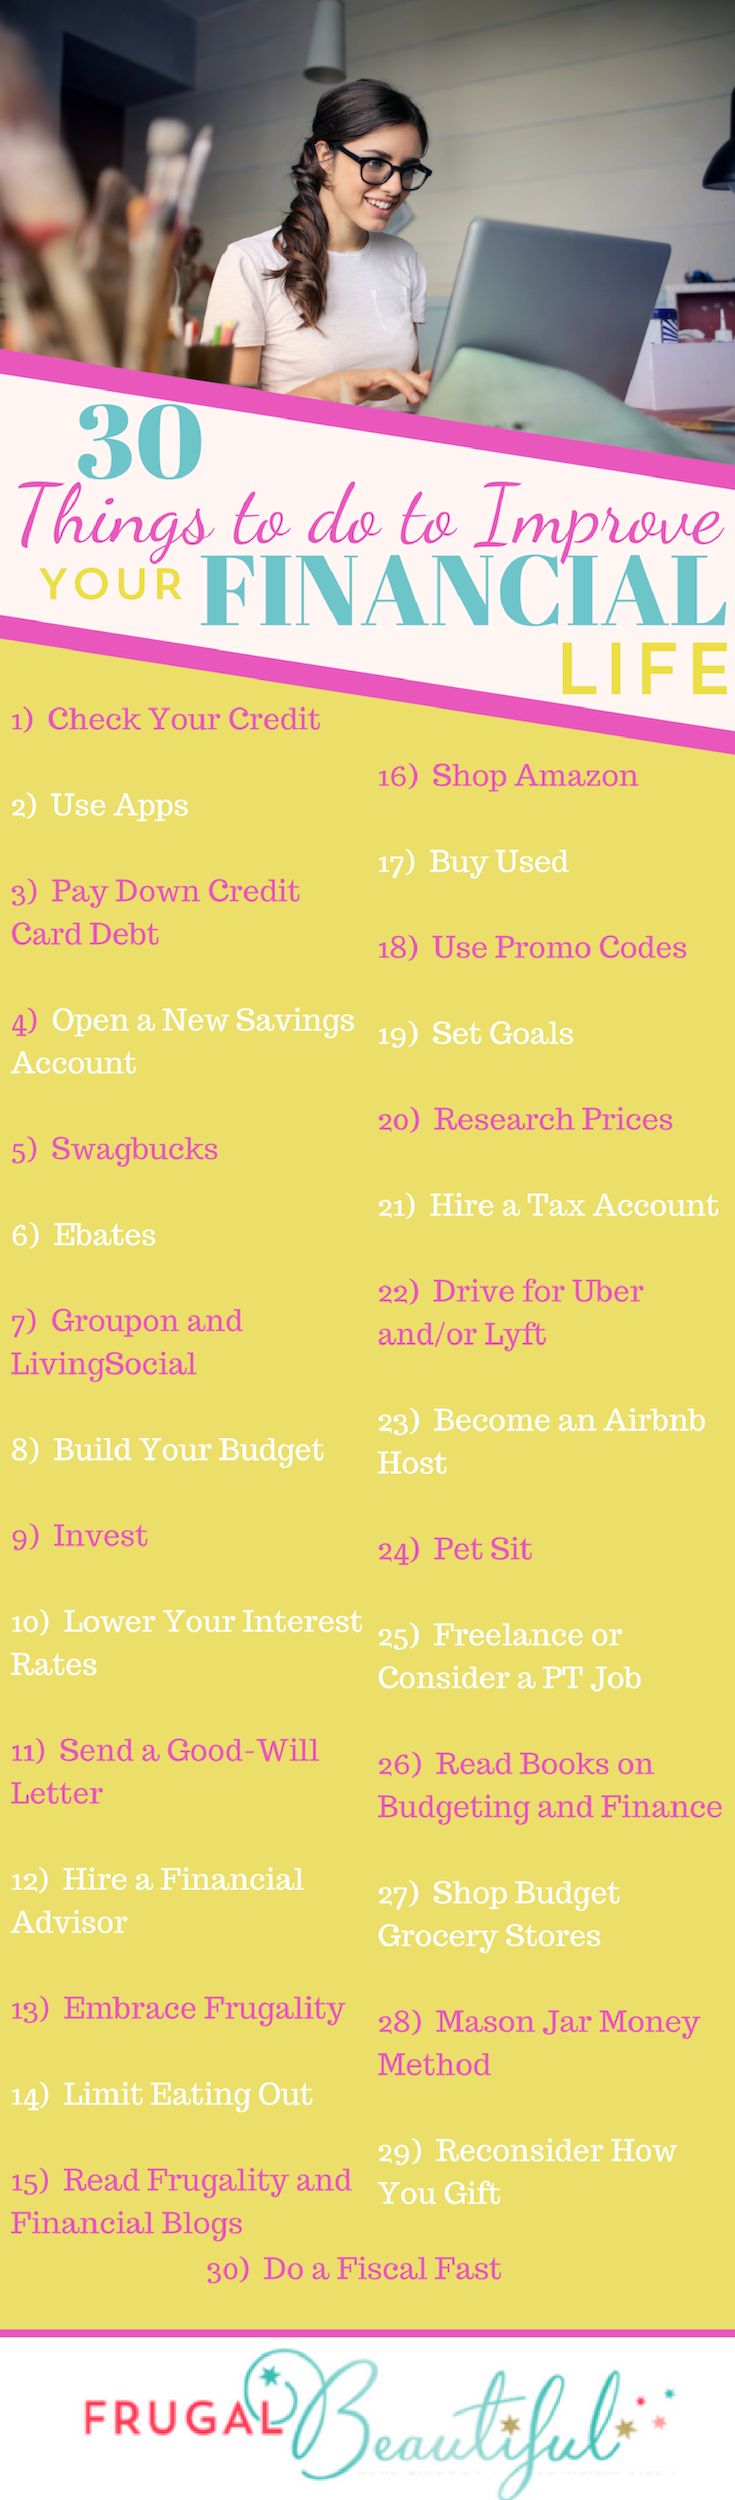 Looking to improve your financial life but confused or overwhelmed on how exactly to do that? Look no further, for our list of 30 ideas has you covered!